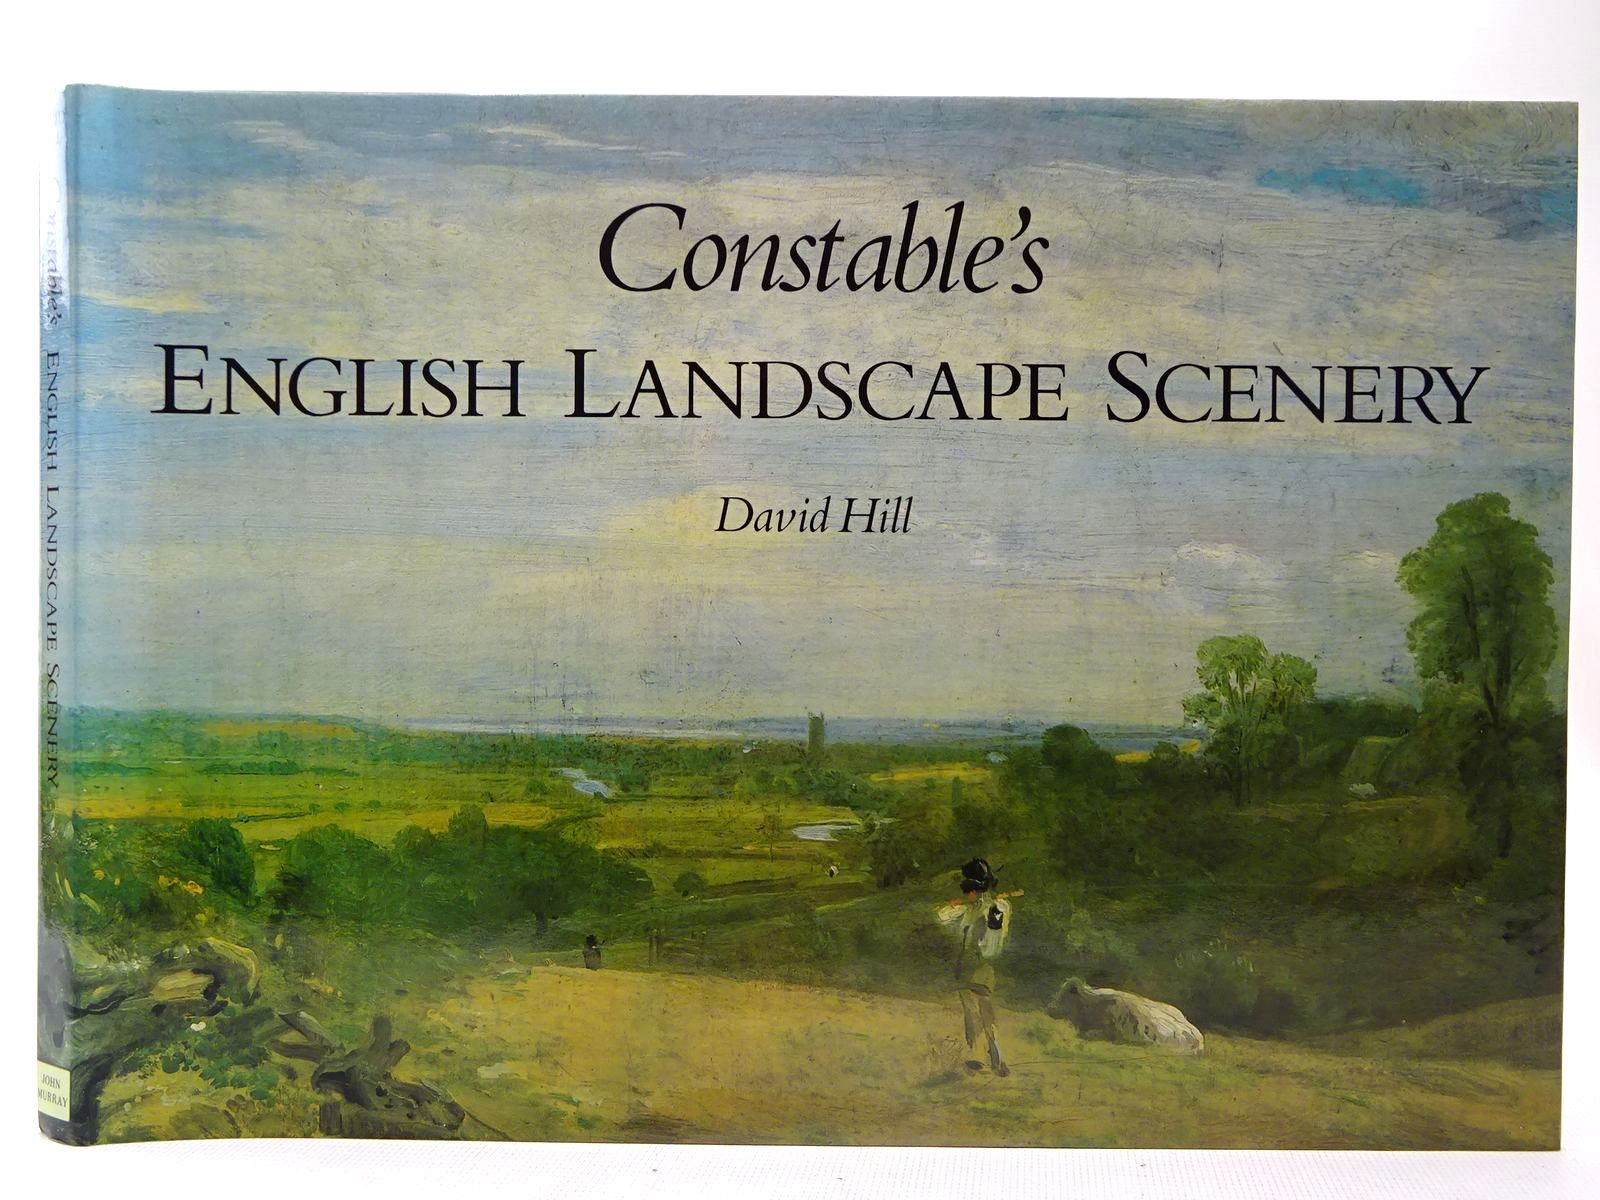 Photo of CONSTABLE'S ENGLISH LANDSCAPE SCENERY written by Hill, David illustrated by Constable, John published by John Murray (STOCK CODE: 2127911)  for sale by Stella & Rose's Books